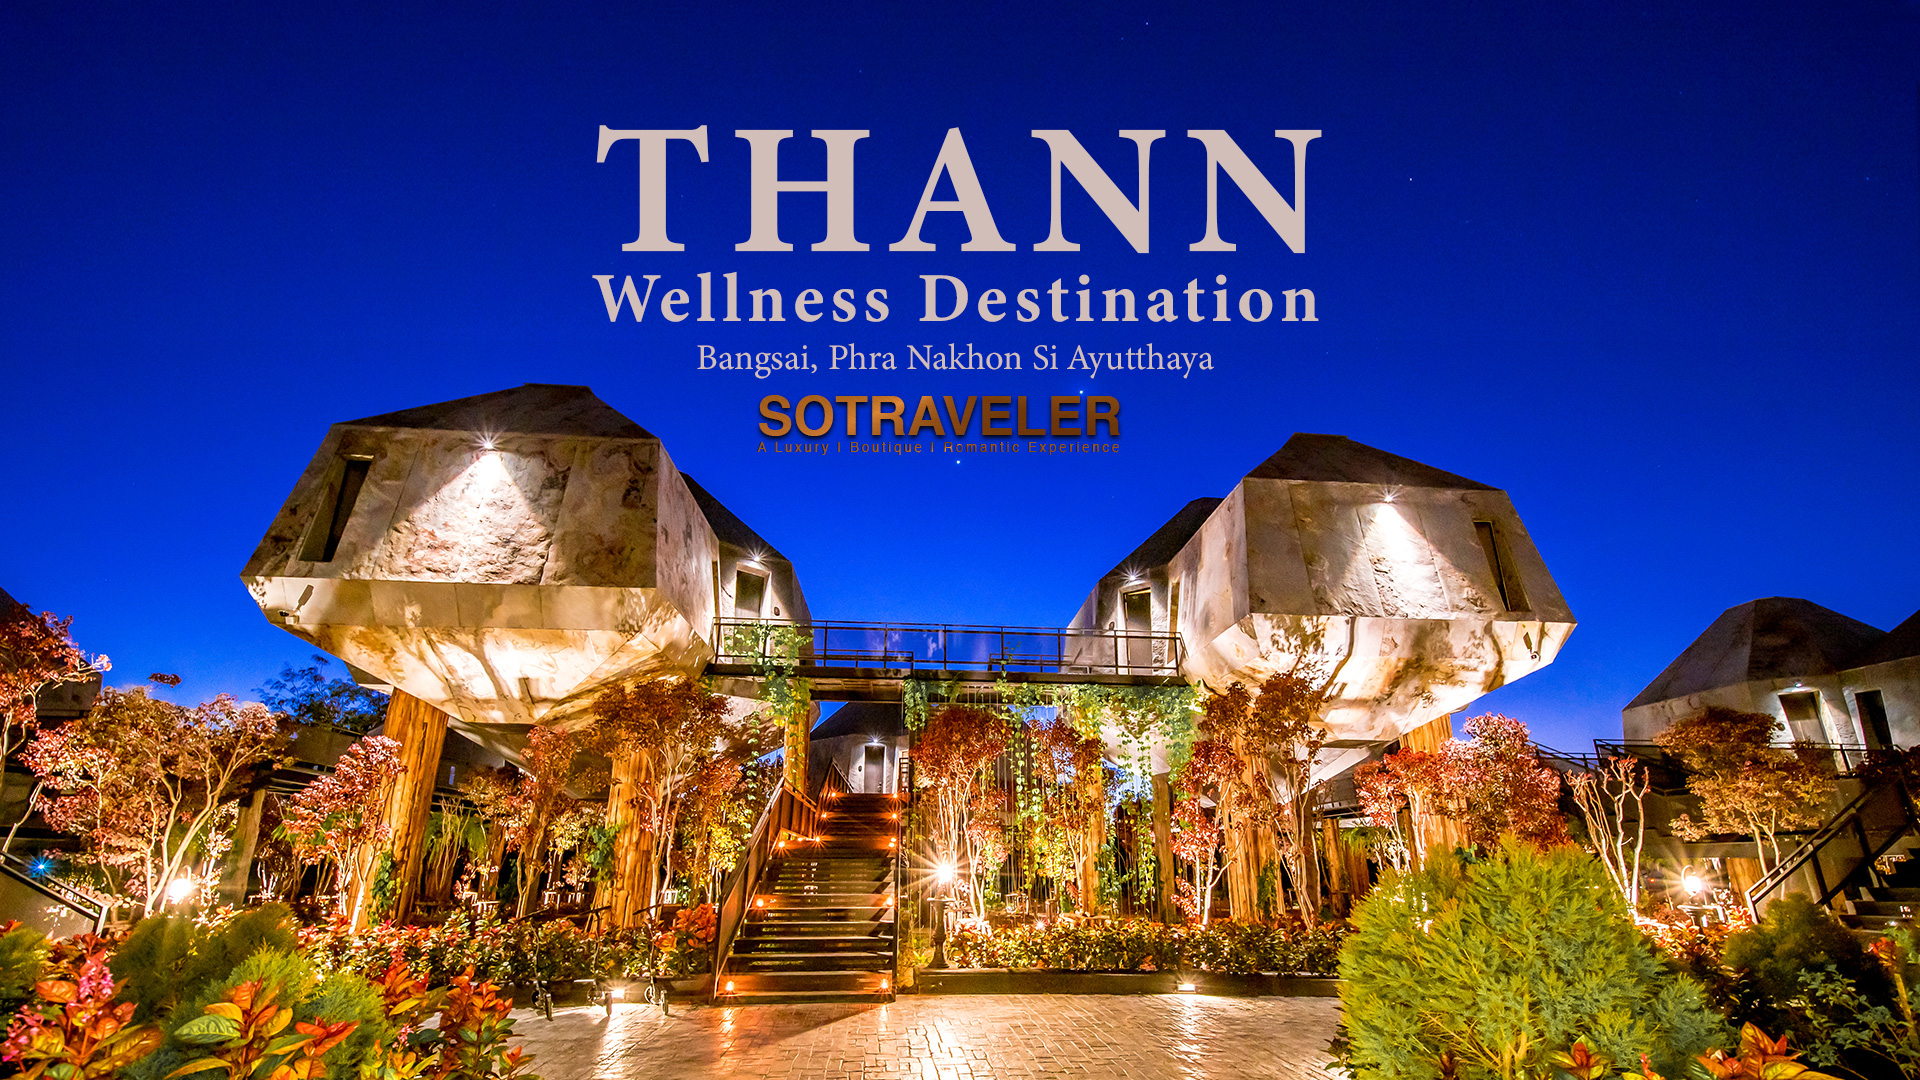 Tree House thann wellness destination ayutthaya